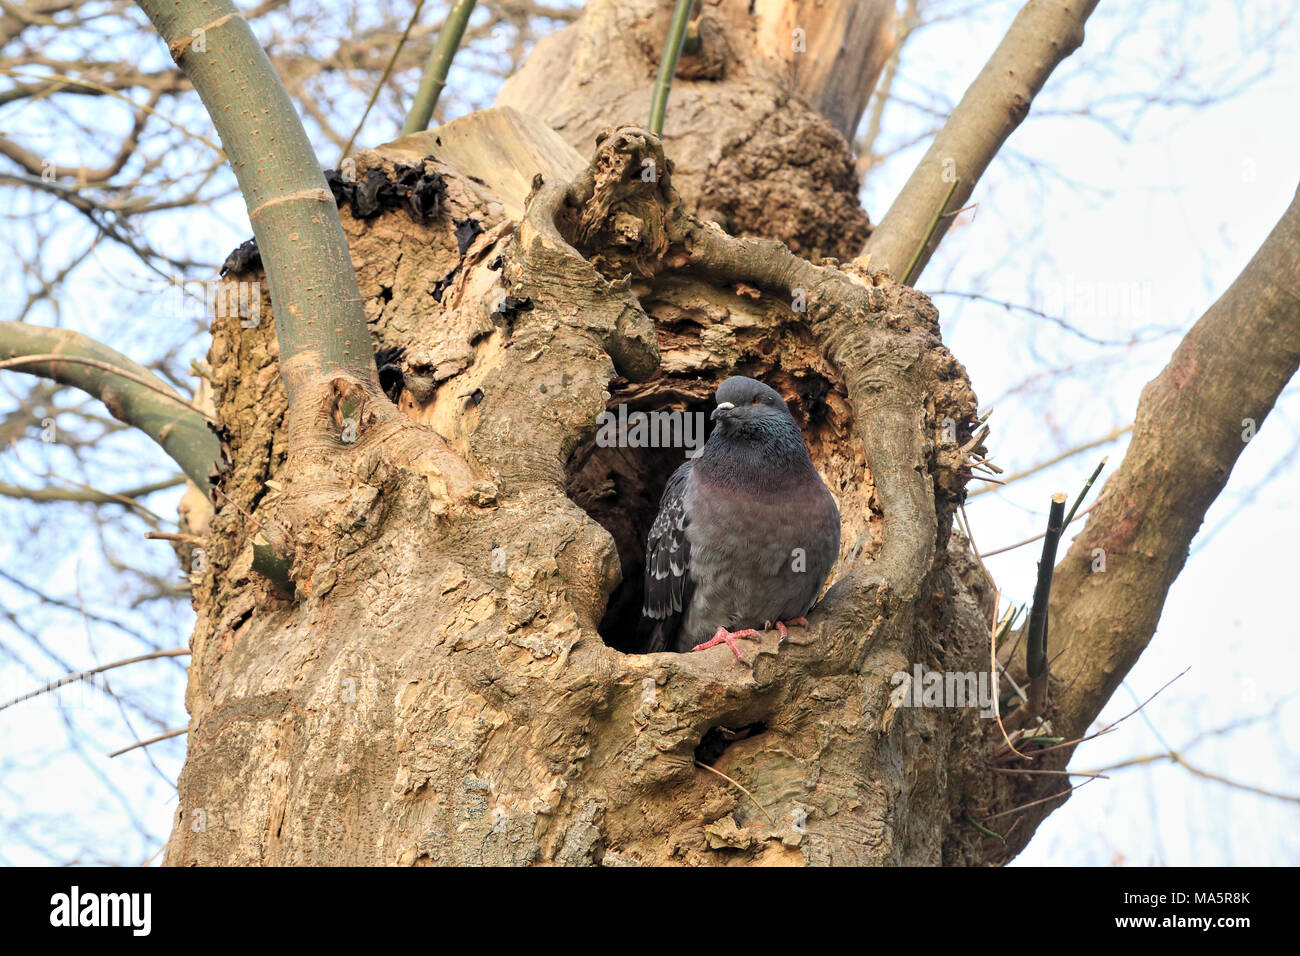 Pigeon sitting in tree hollow hole, Columba livia - Stock Image